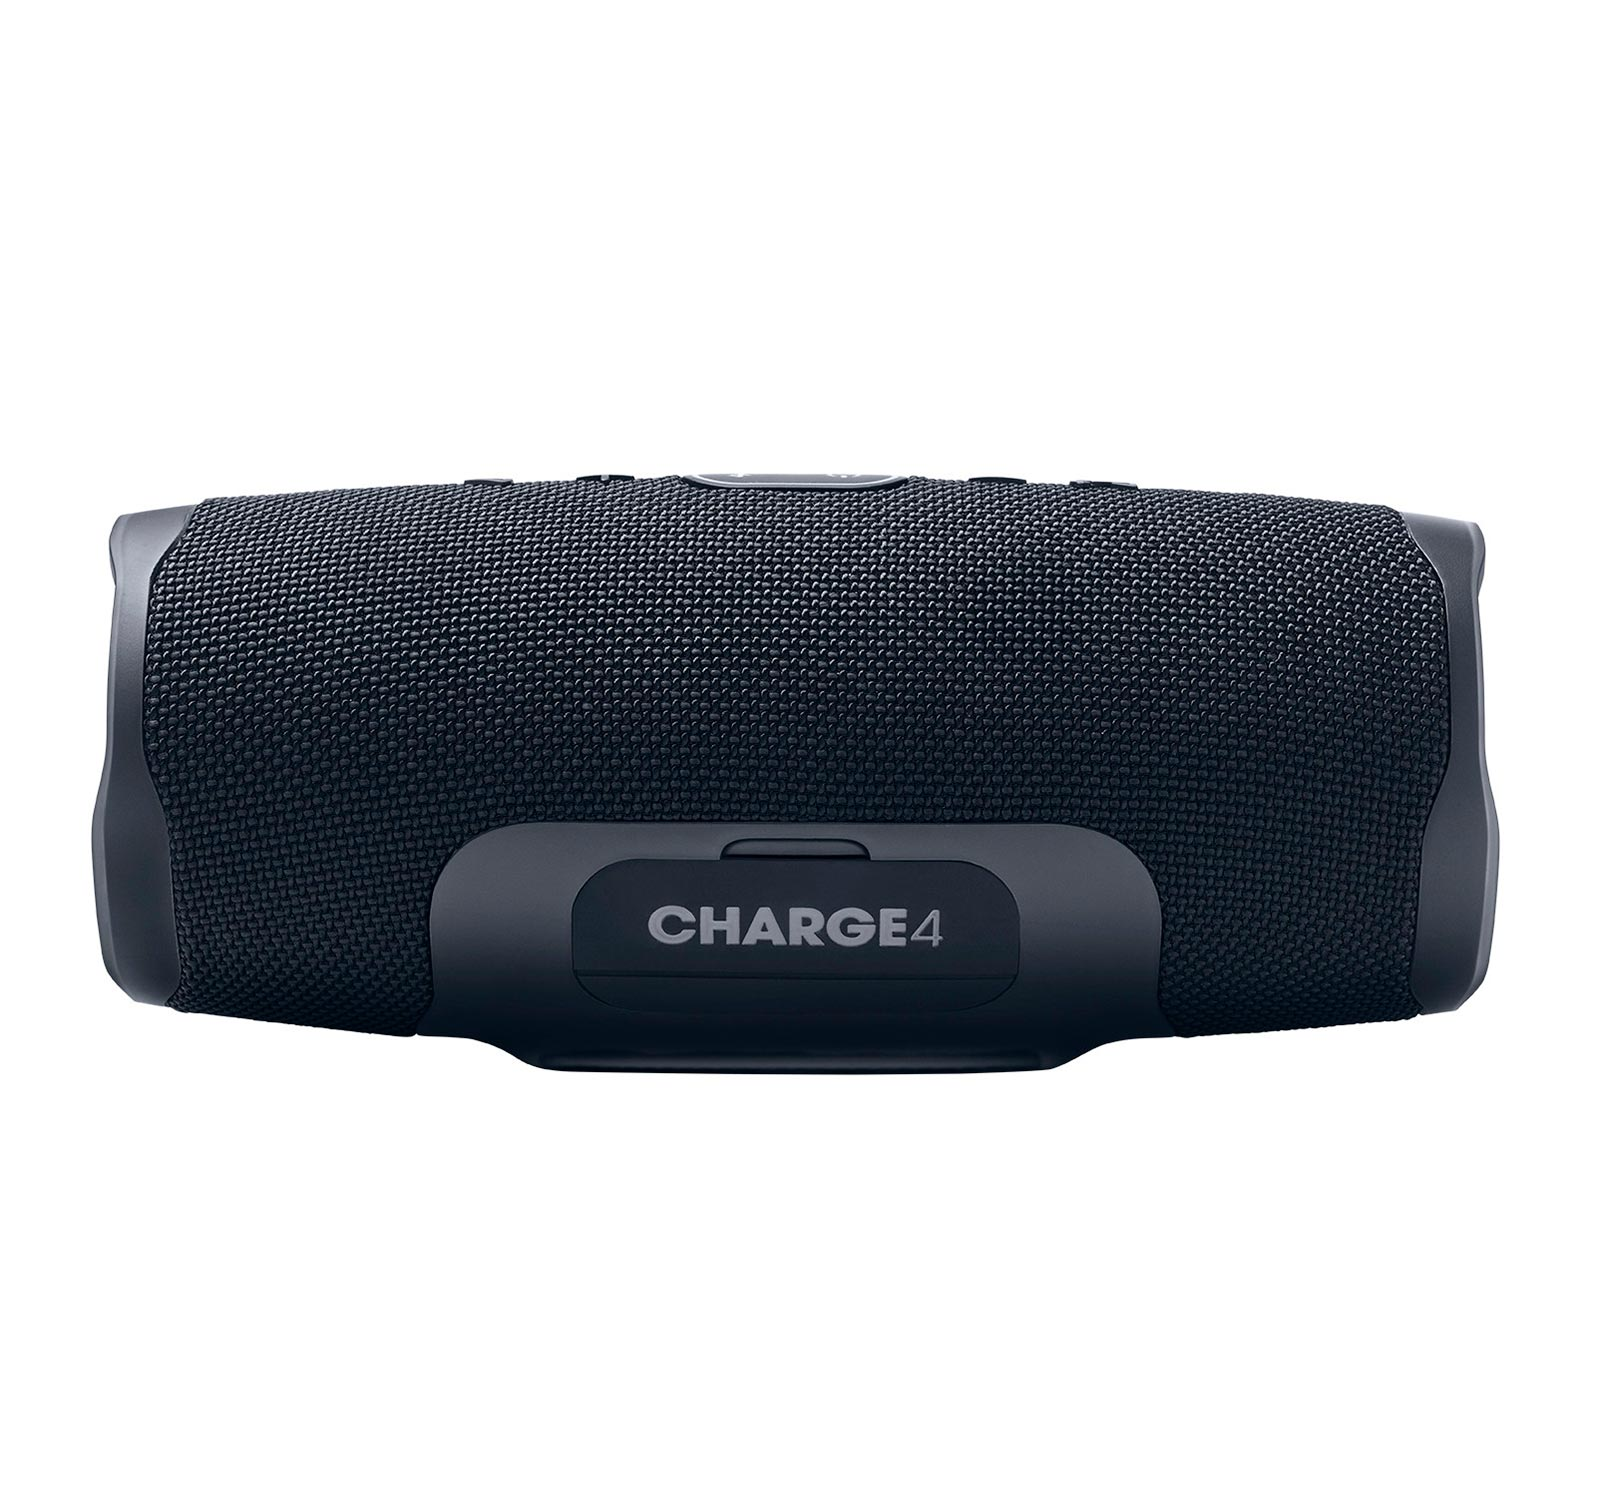 JBL-Charge-4-Portable-Bluetooth-Speaker thumbnail 4